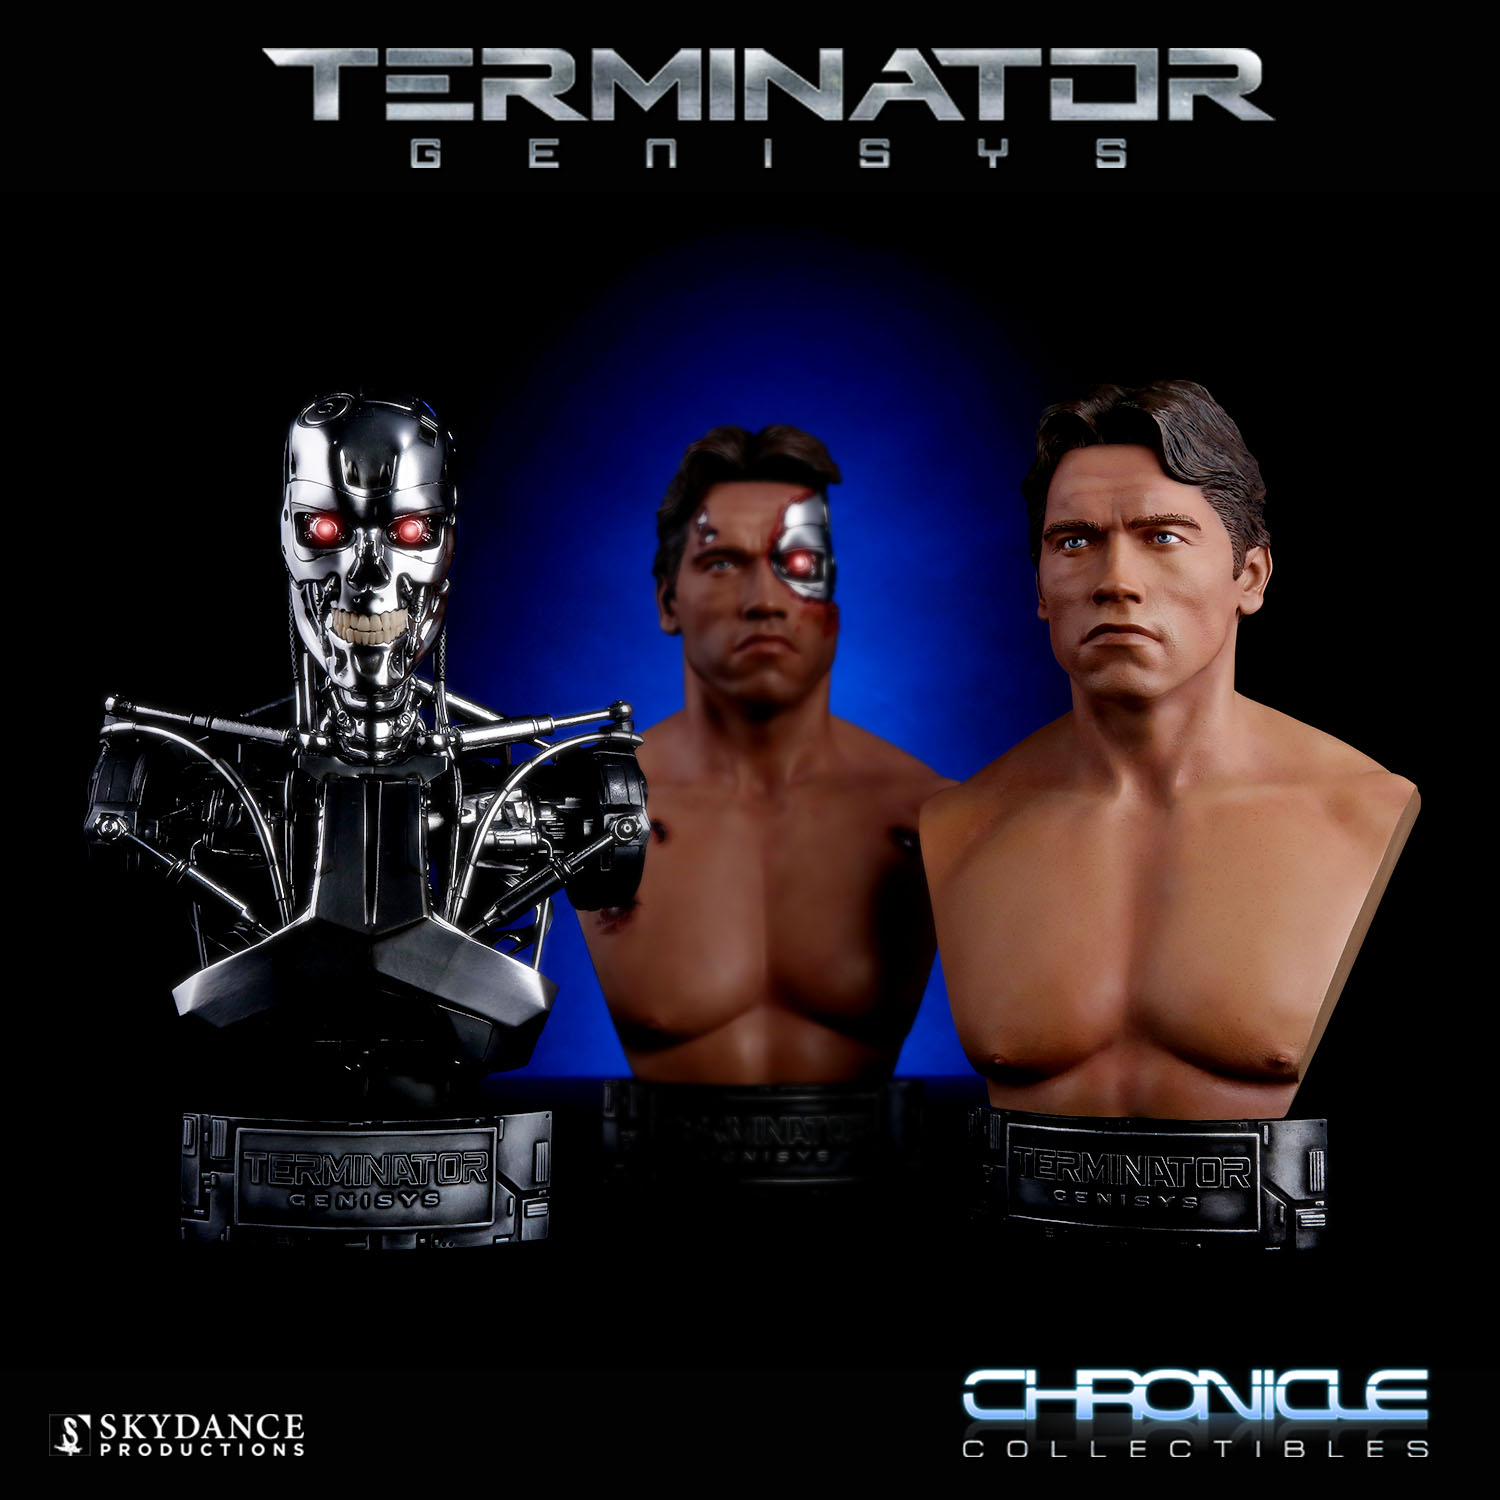 Terminator Genisys 1:2 Scale T-800 Endoskeleton Bust Pre-Order